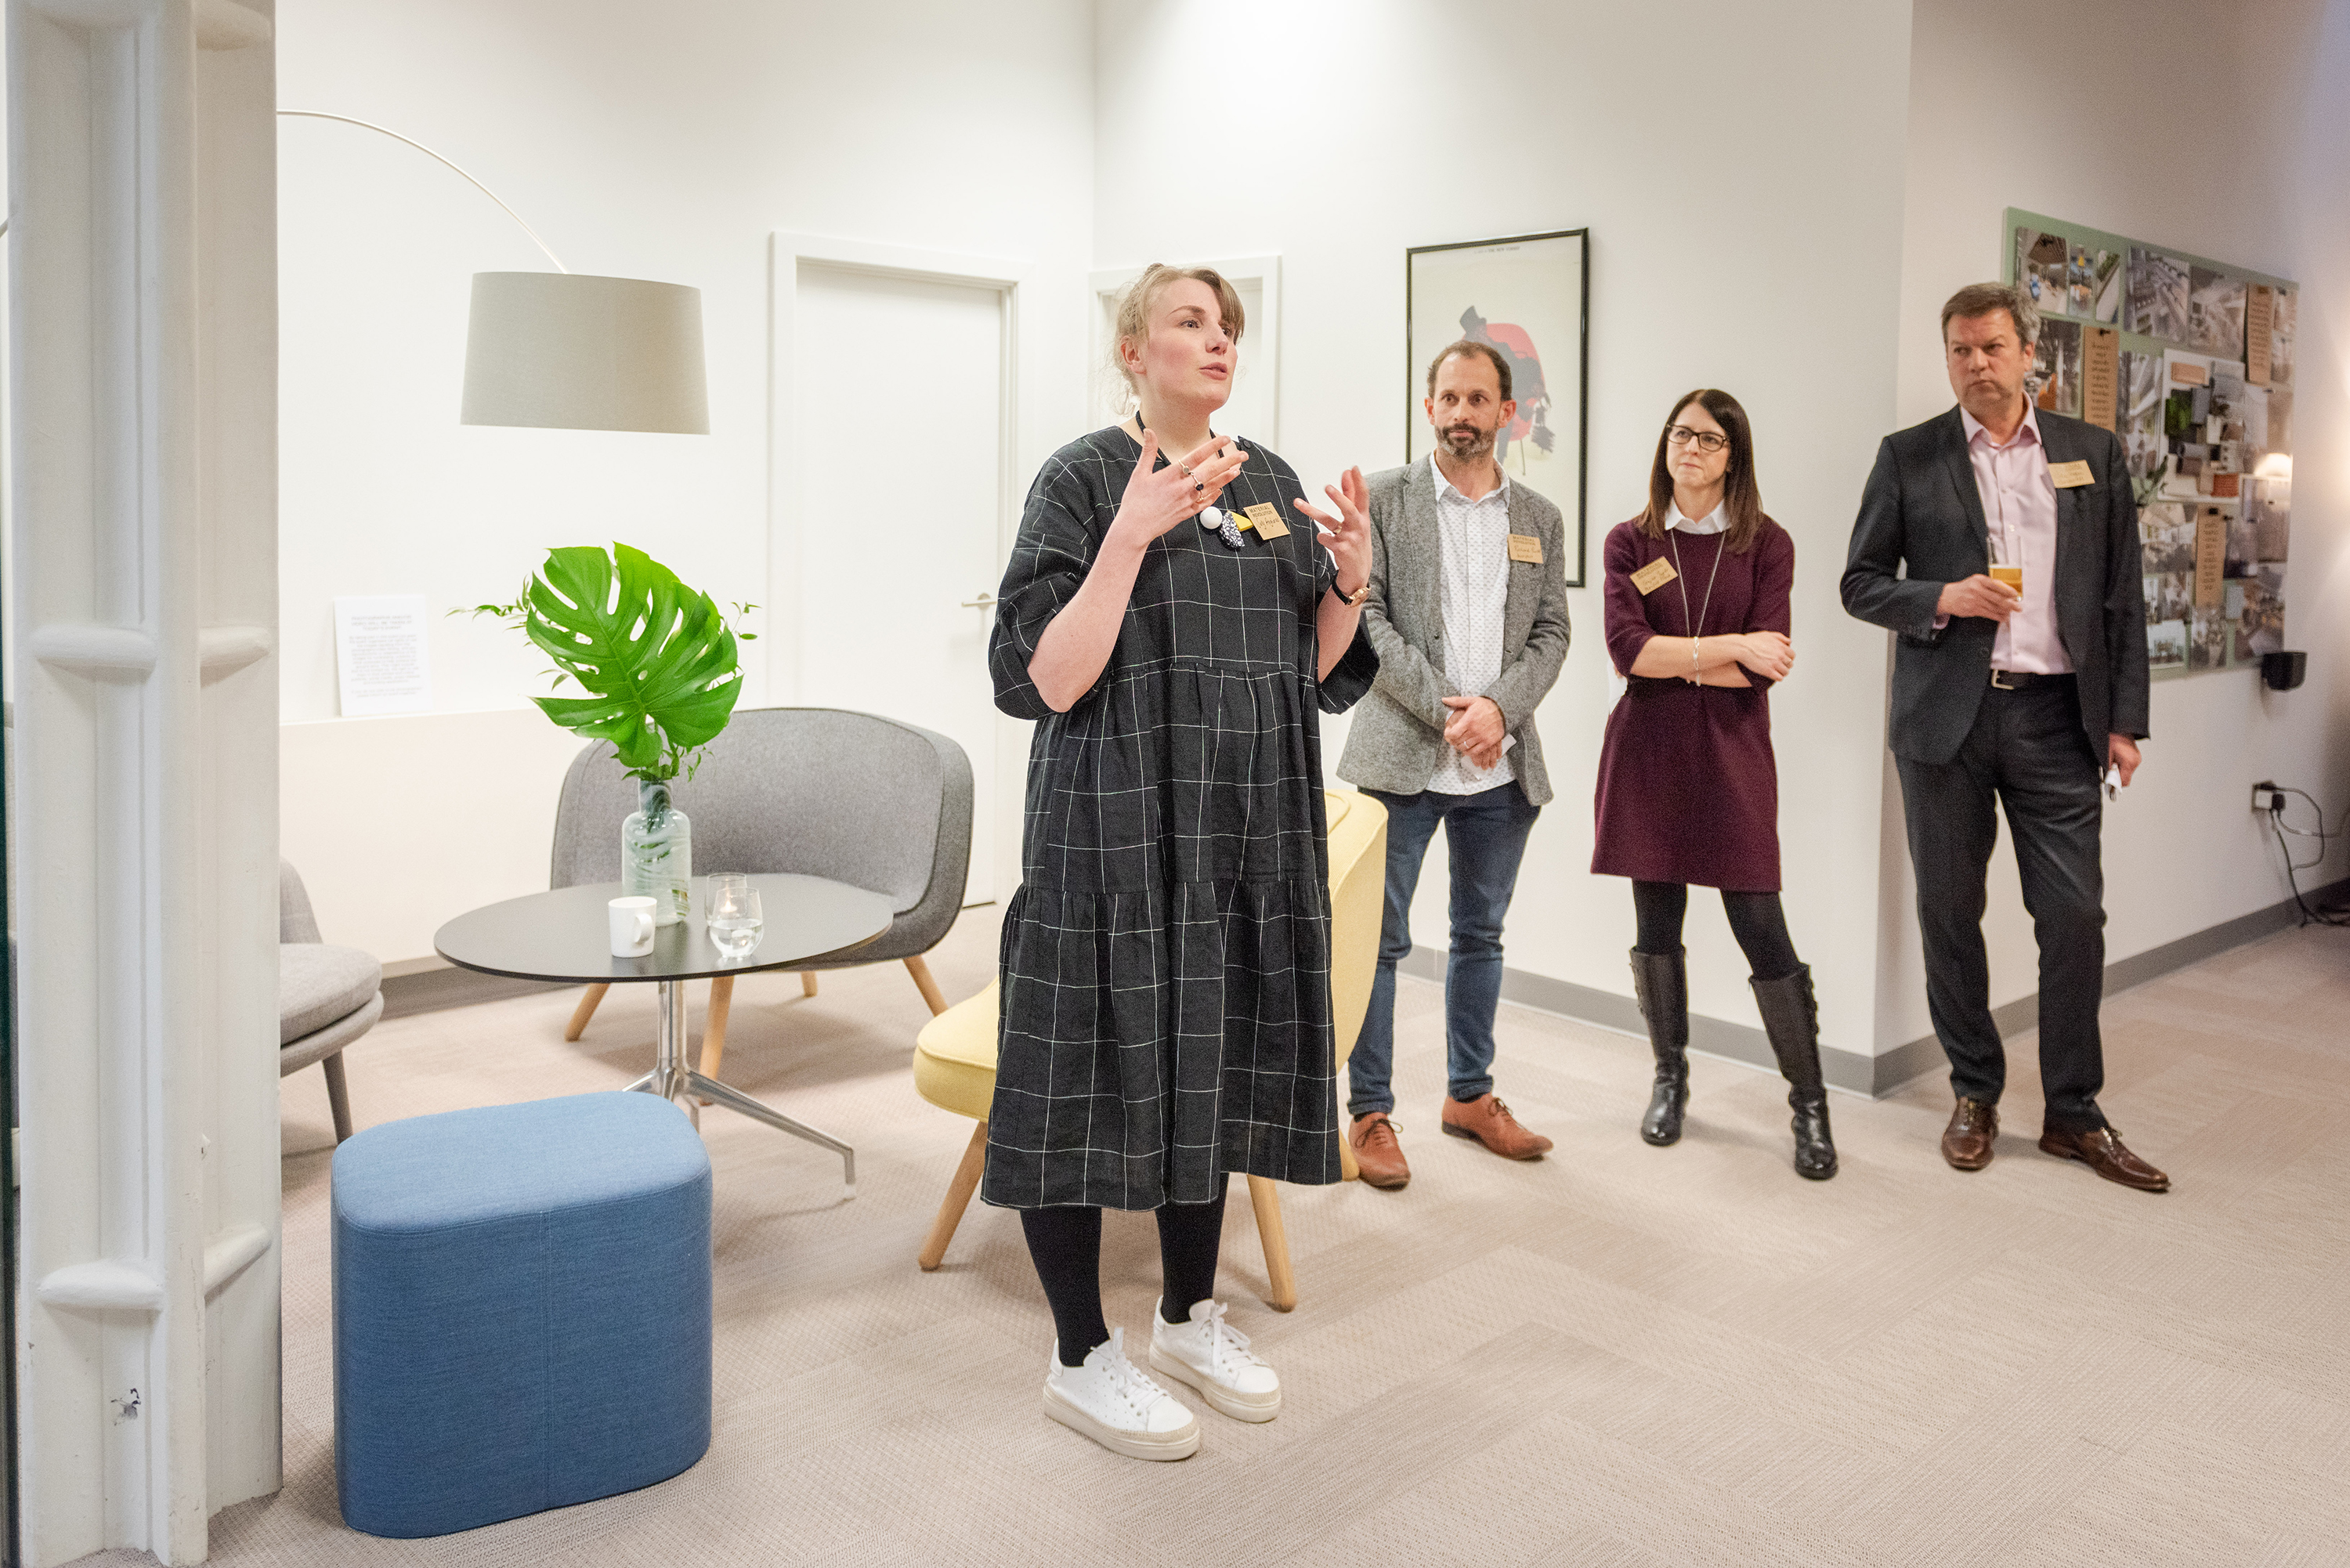 Intro talk from trend consultant Sally Angharad